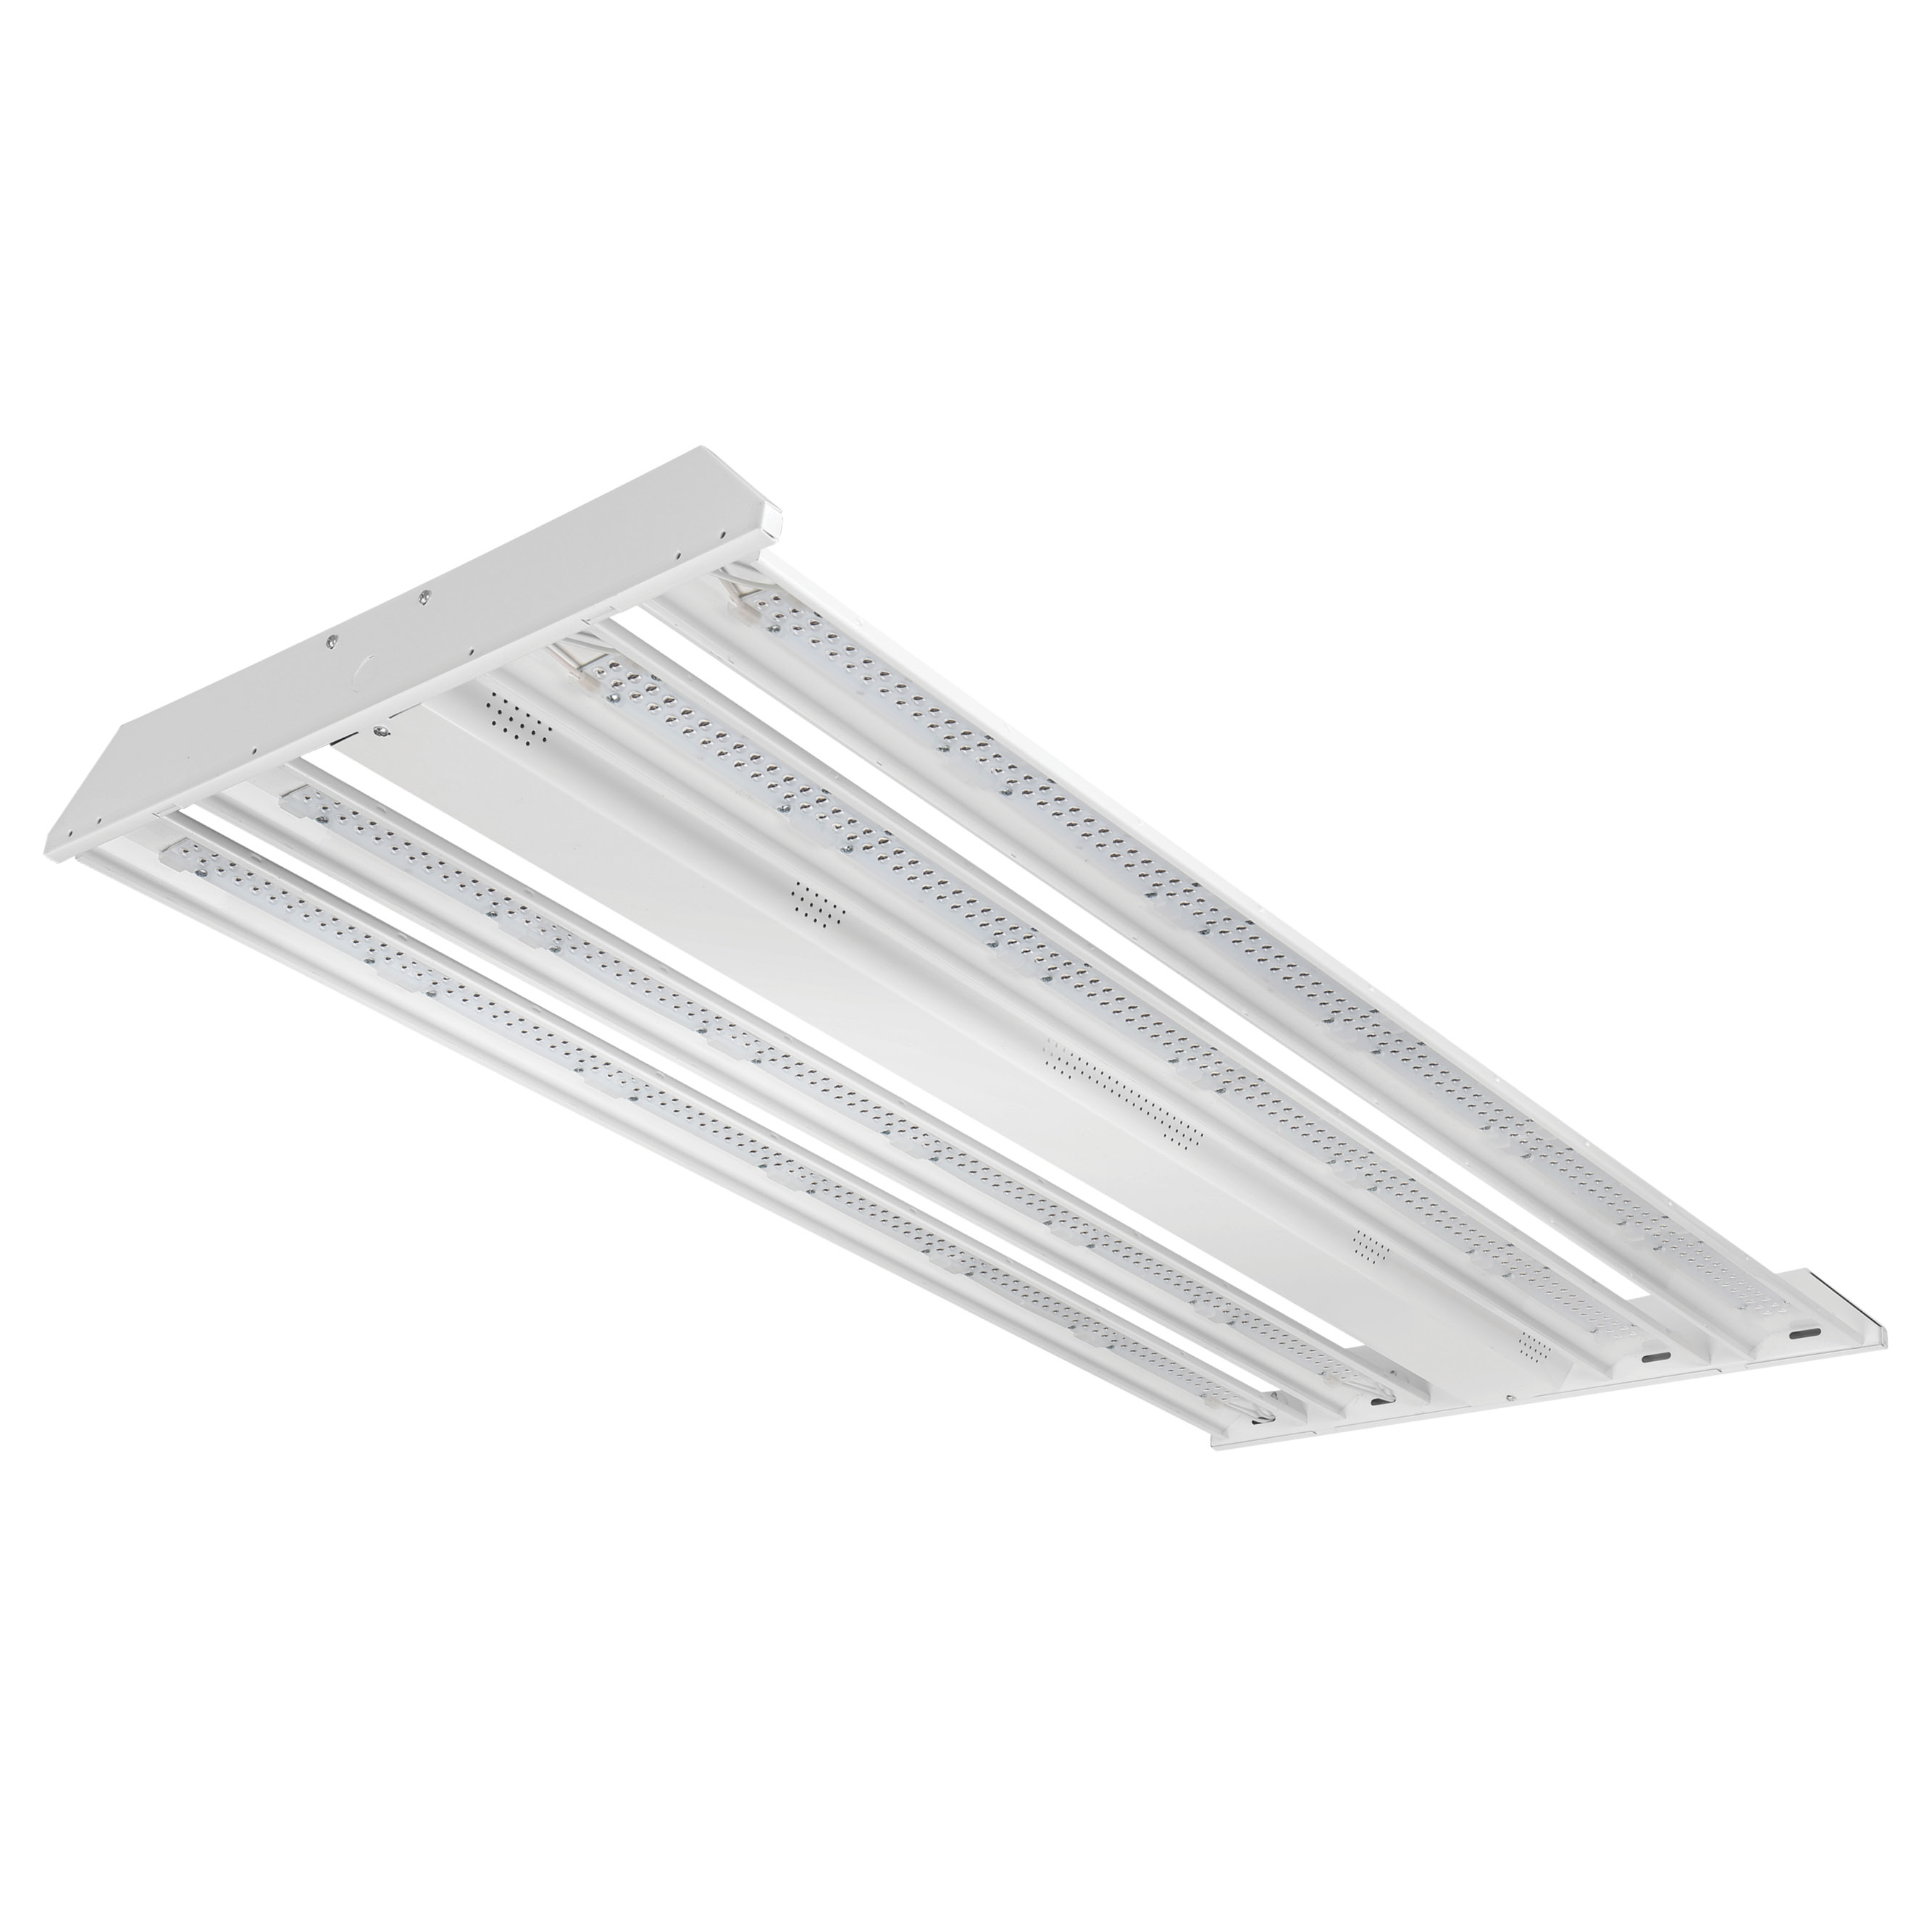 Wide Body Veg 320W Linear LED grow light for vegetative applications and wide coverage 320W